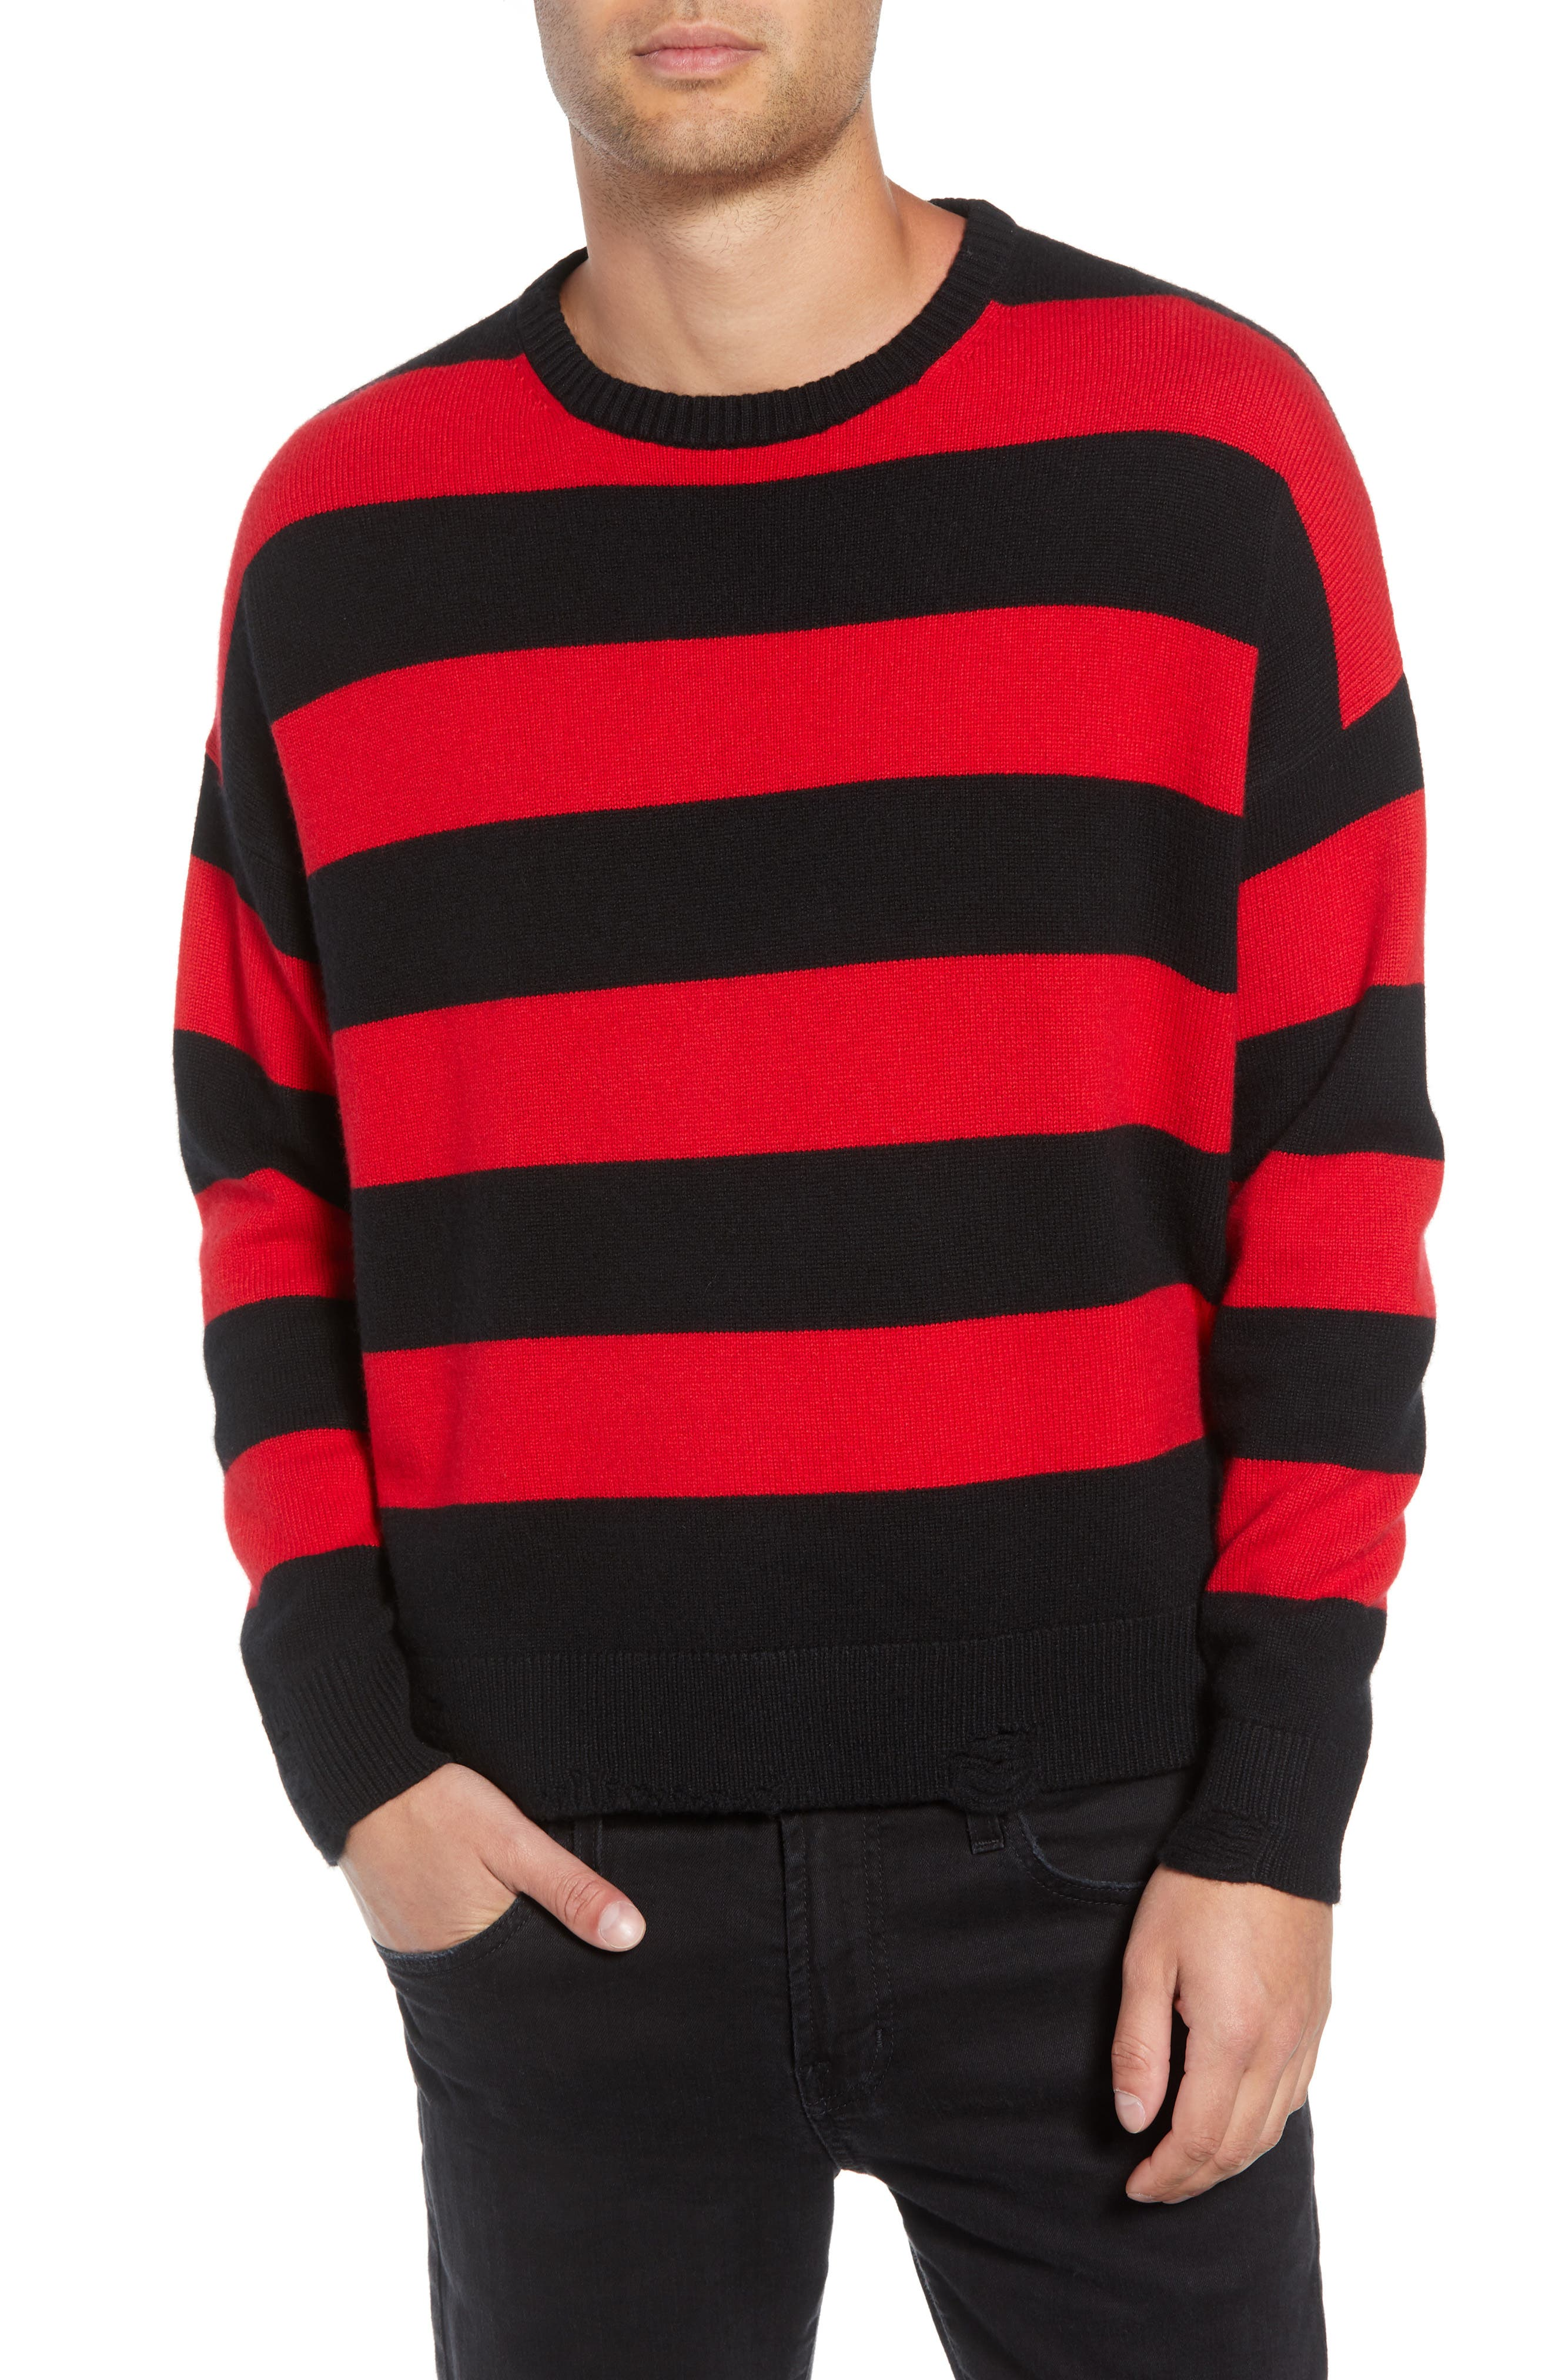 Shredded Stripe Sweater,                             Main thumbnail 1, color,                             RED/ BLACK